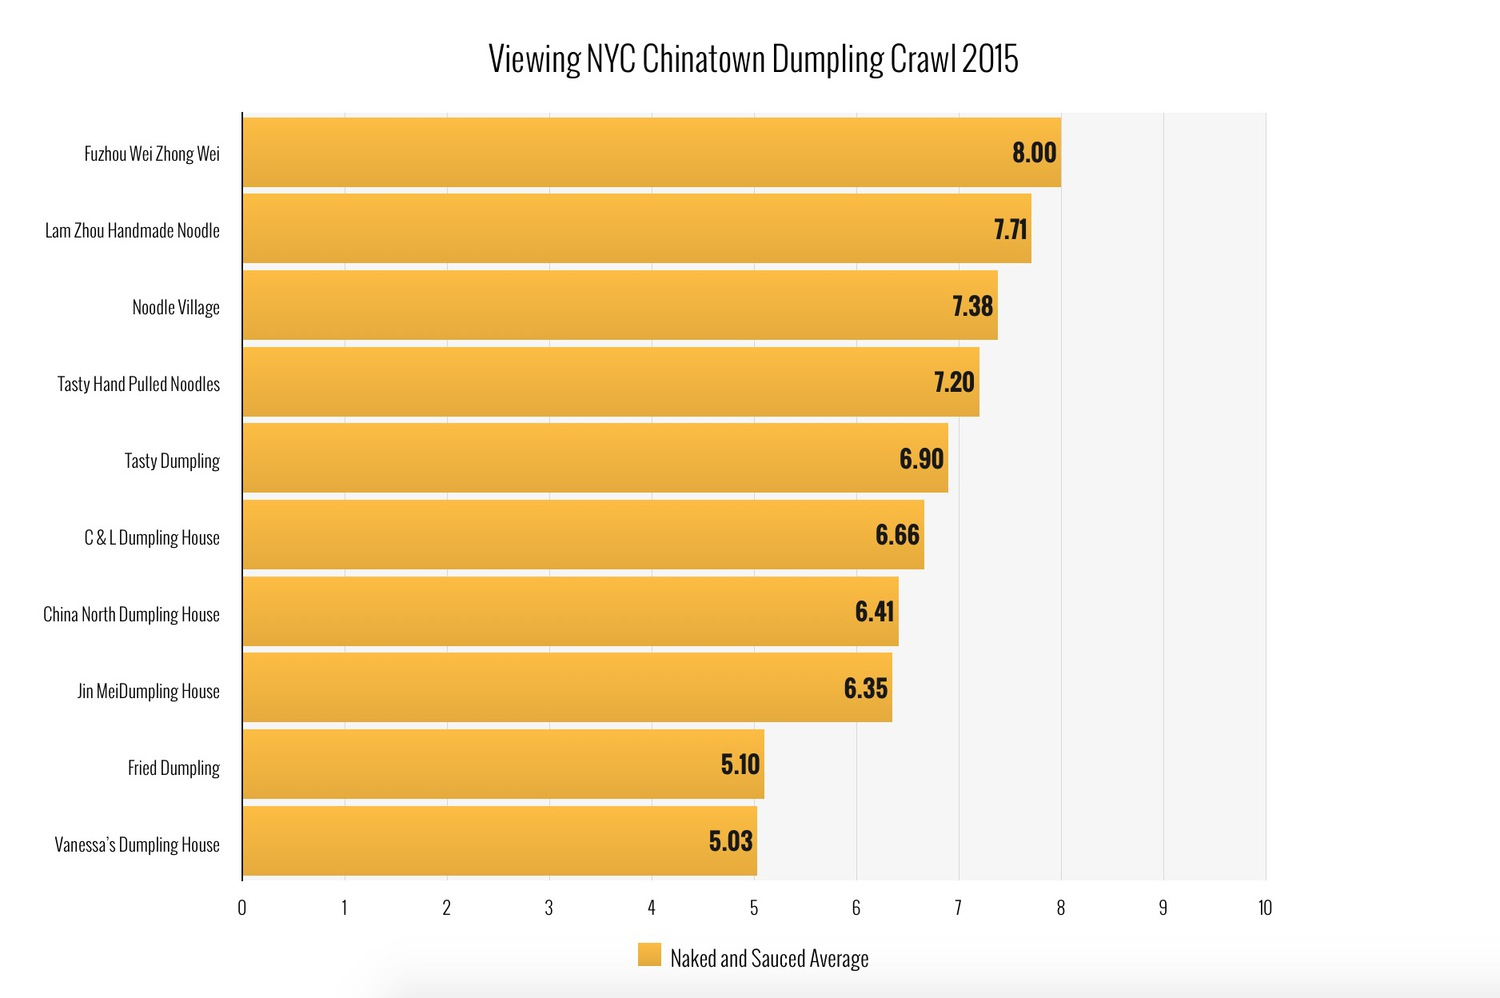 "Viewing NYC Chinatown Dumpling Ratings - Overall Average | Check out Viewing NYC for more info on the 2015 Chinatown Dumpling Crawl and to see who won!  <a href=""https://viewing.nyc/the-best-dumpling-in-the-2015-viewing-nyc-chinatown-dumpling-crawl-is/"" rel=""nofollow"">viewing.nyc/the-best-dumpling-in-the-2015-viewing-nyc-chi...</a>"